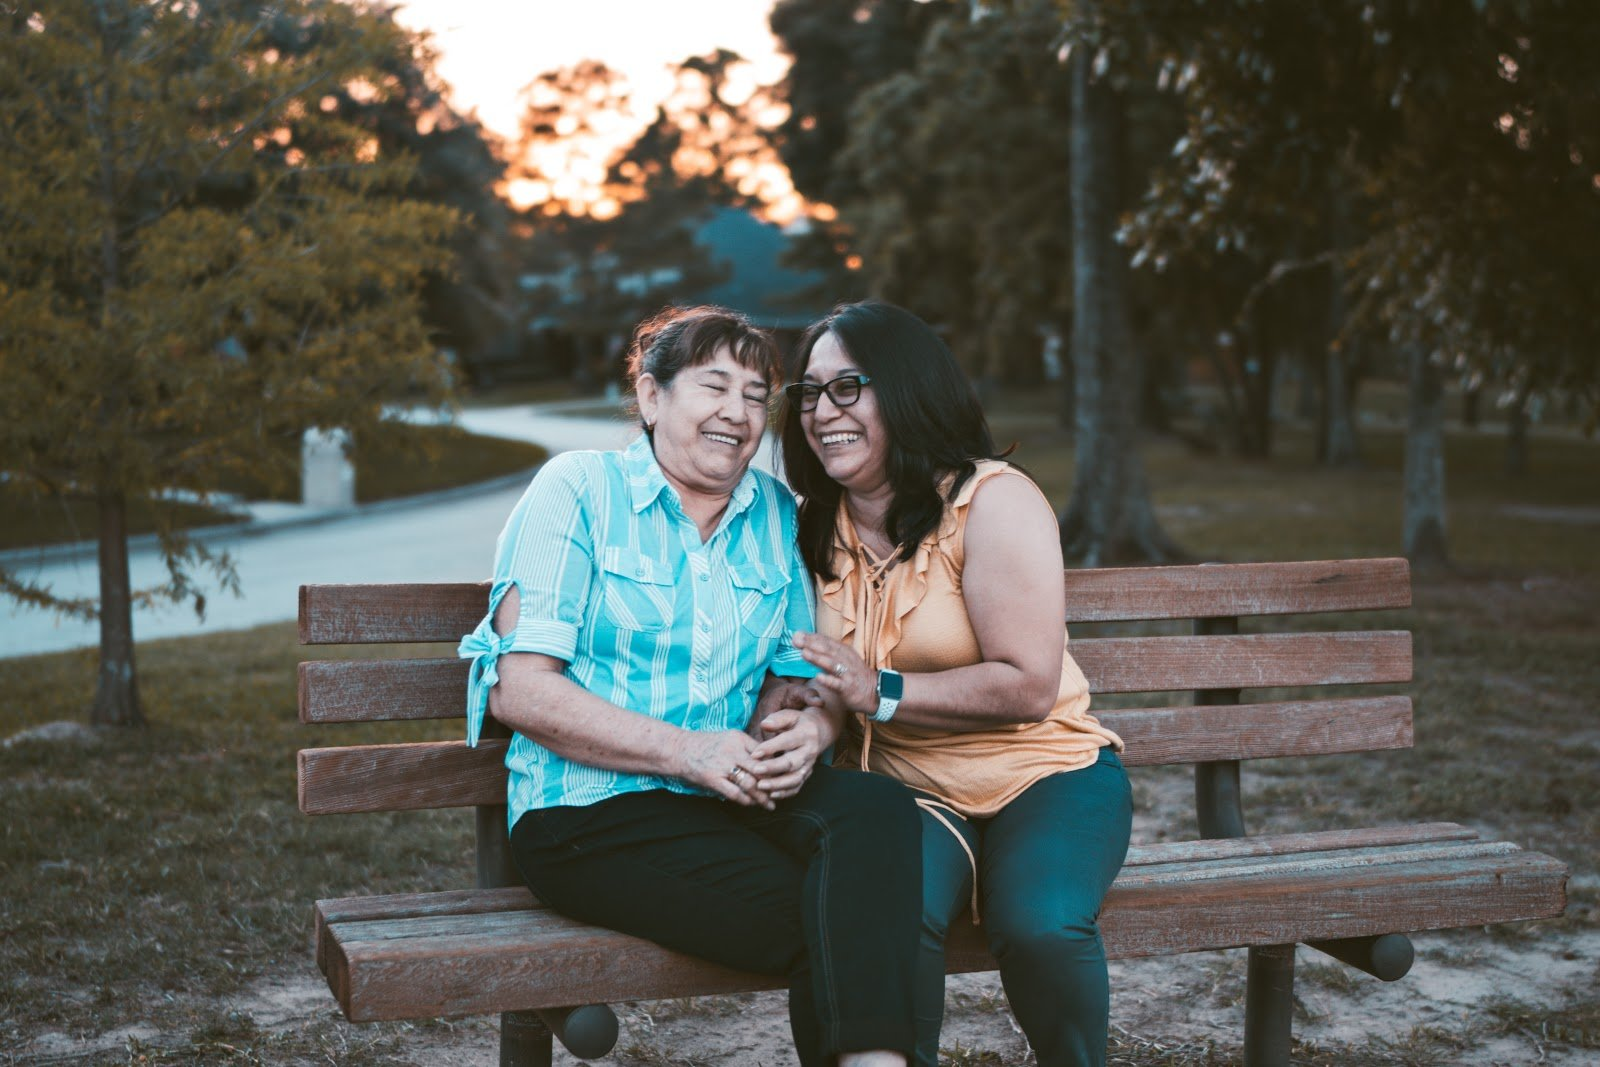 two women on park bench laughing